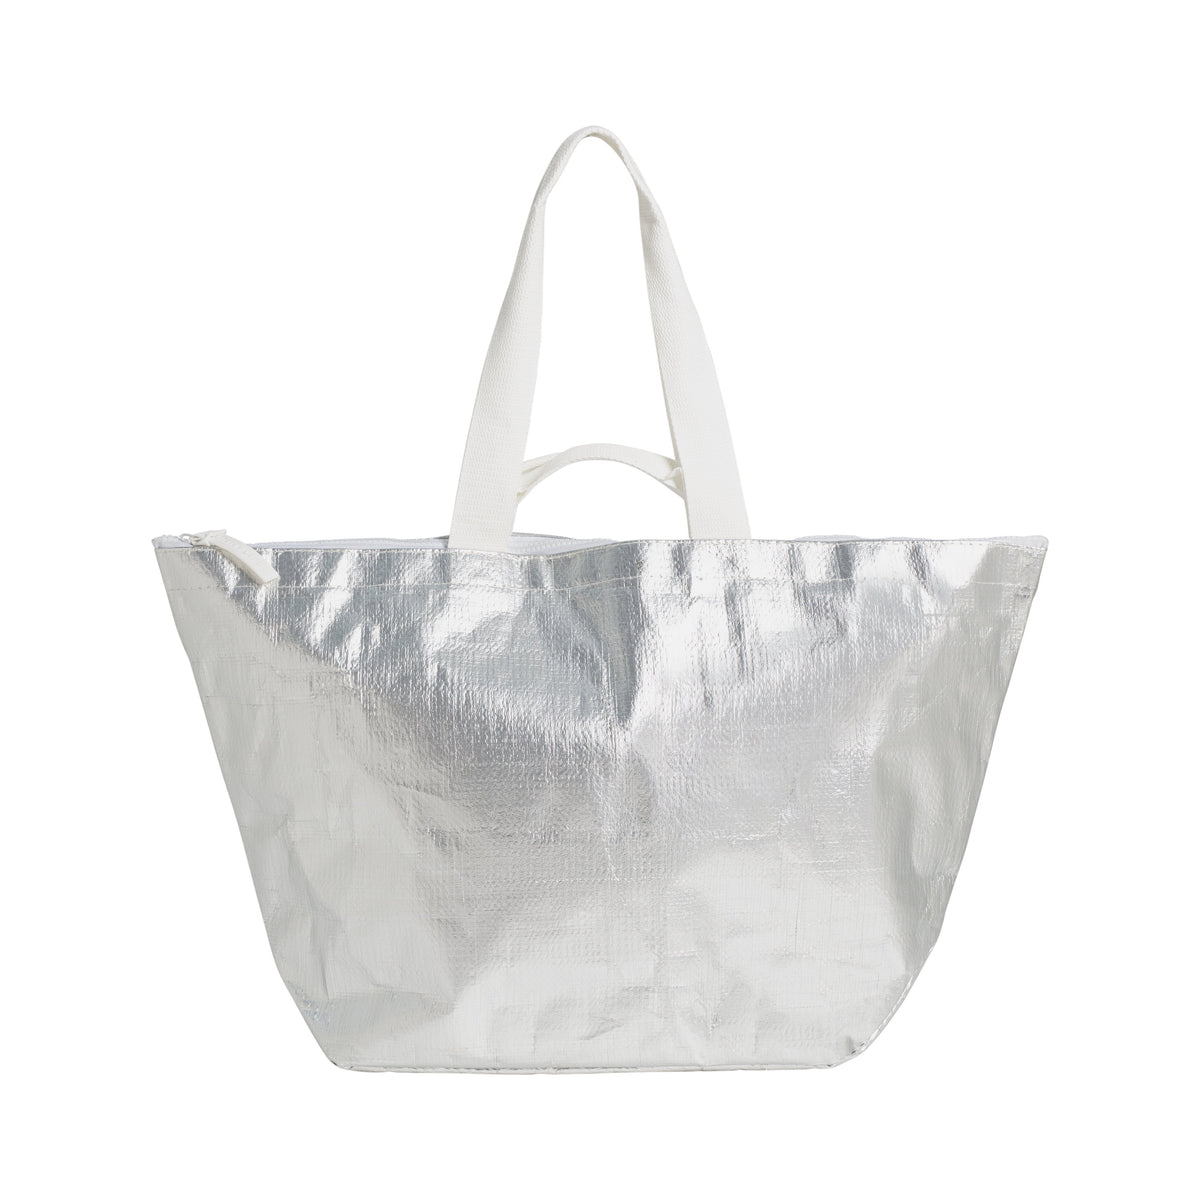 Sunnylife | Light Carry Me Tote | Metallic - Silver